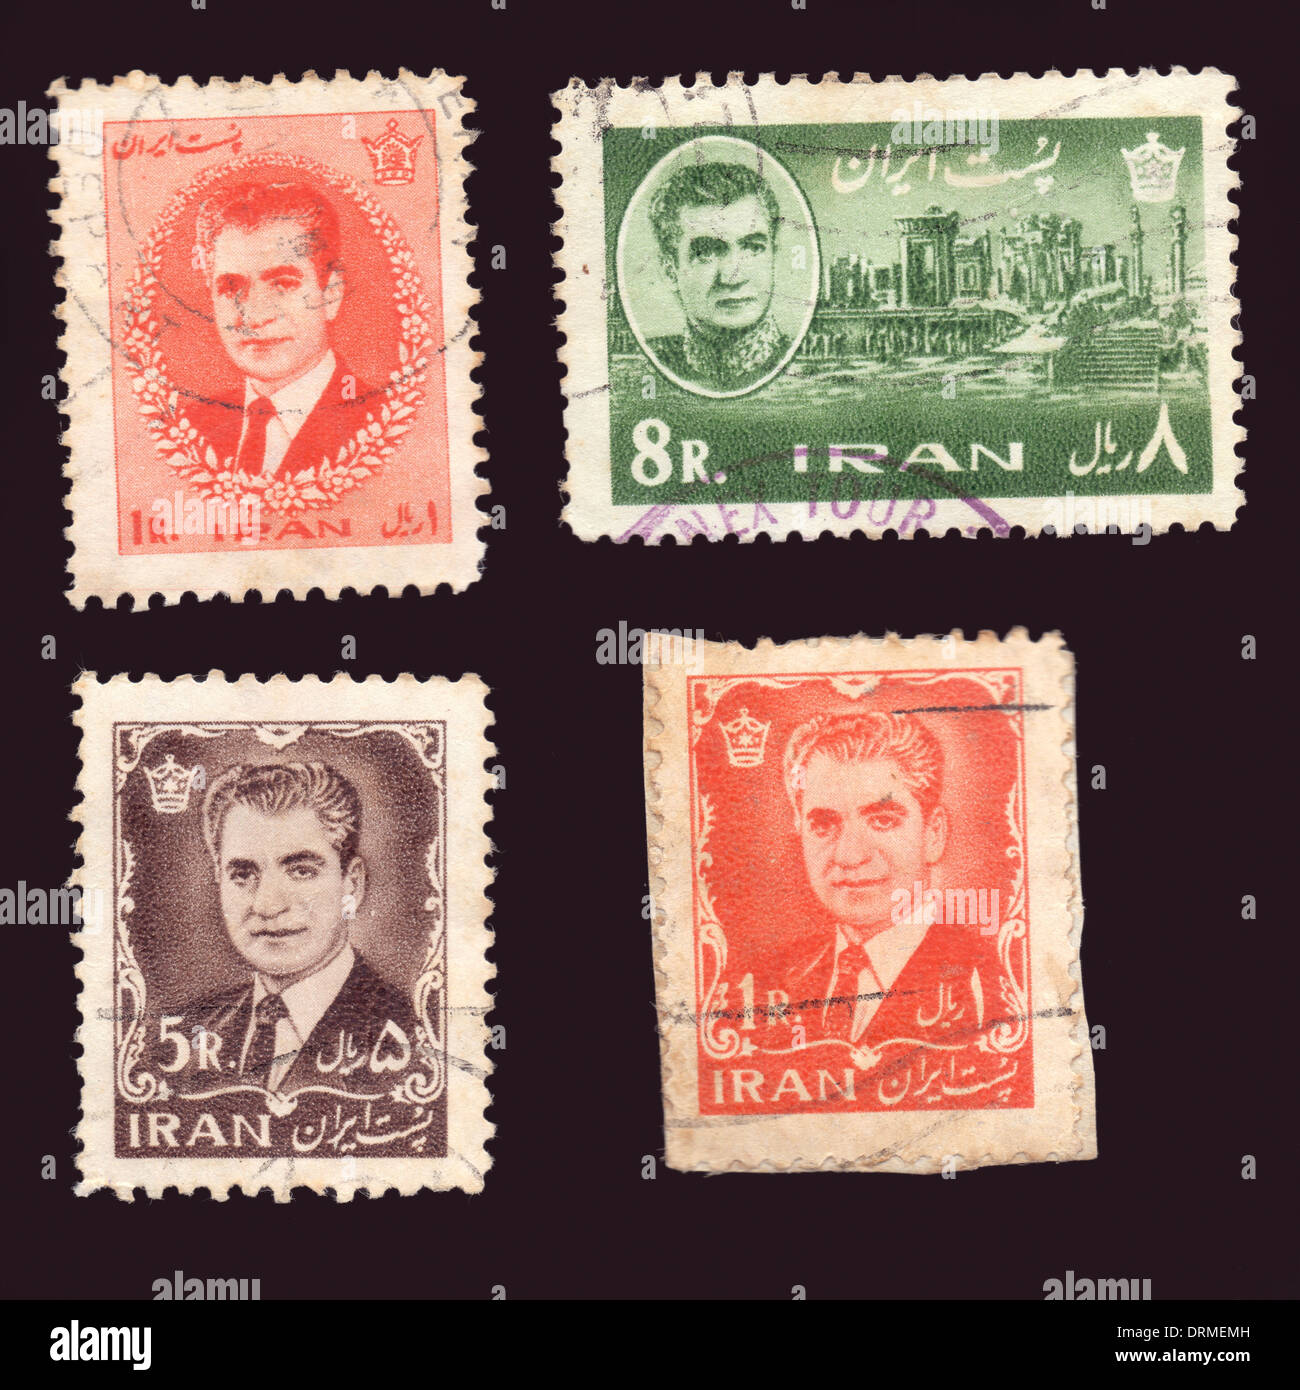 Iranian stamps depicting the Shah of Iran Mohammad Reza Pahlavi - Stock Image